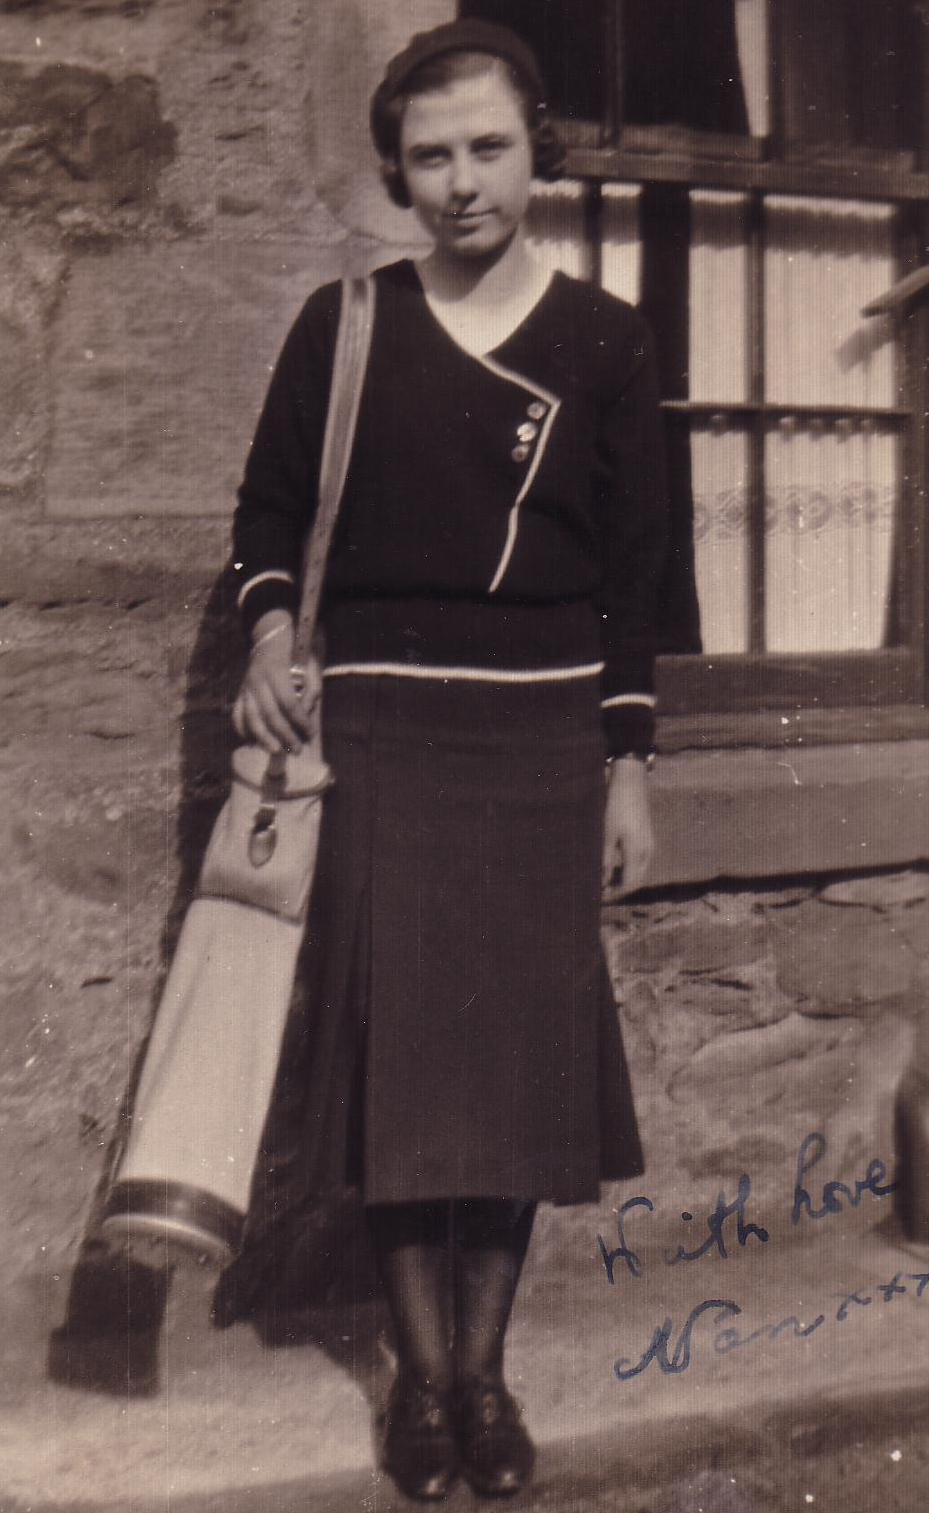 Young Lady Golfer Standing With Golf Bag By Window 1930s